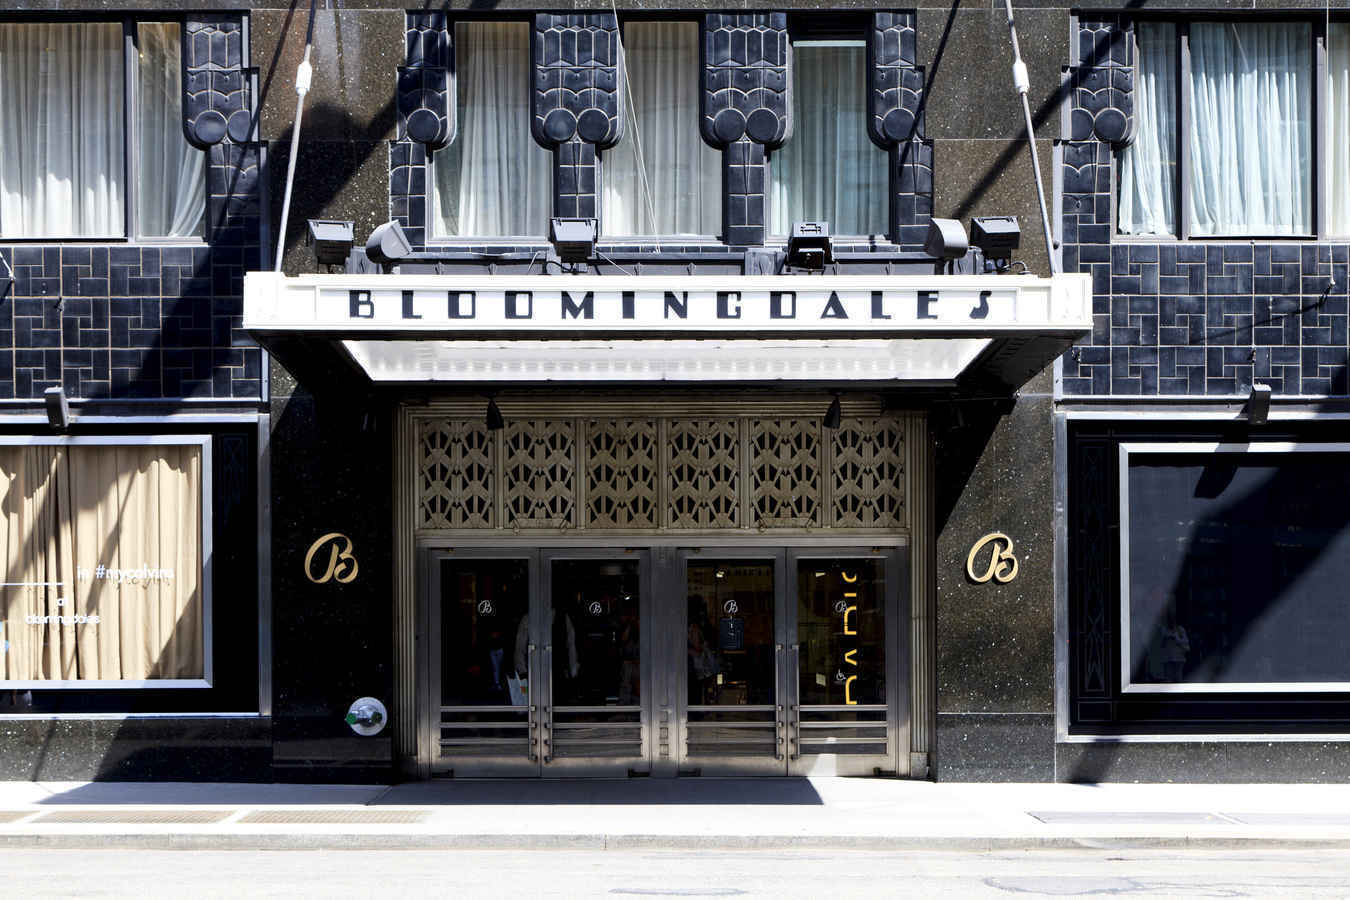 Bloomingdales department store Upper East Side Manhattan